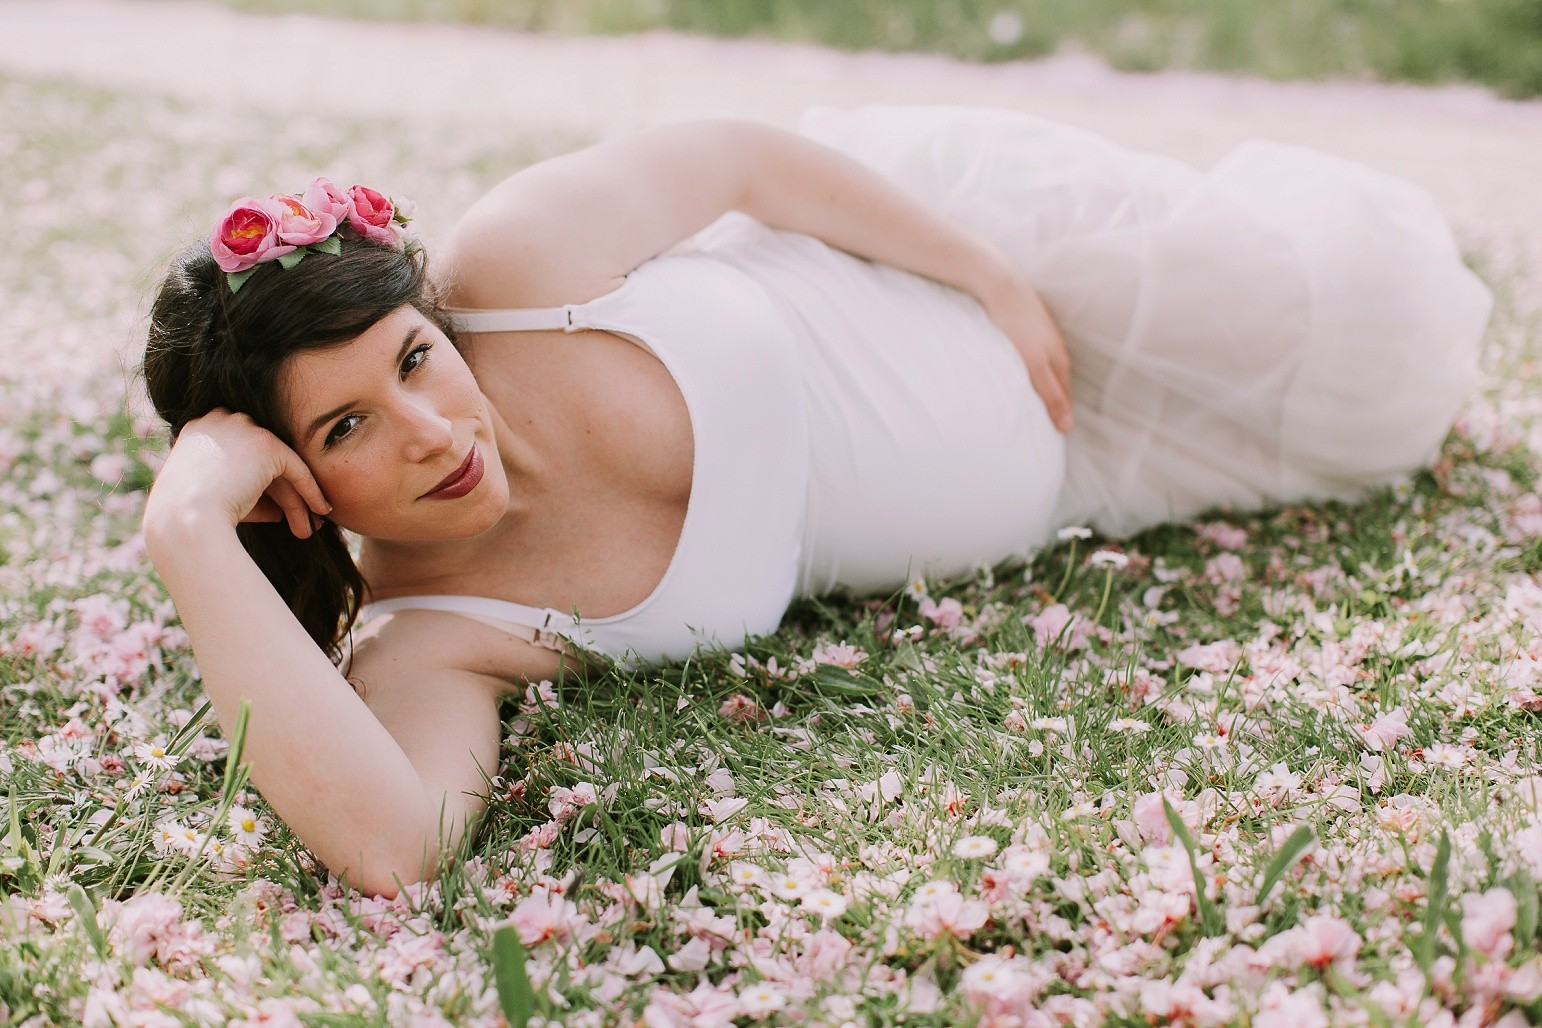 kateryna-photos-grossesse-photographe-sarthe-normandie-nantes-couple-engagement-love-story-le-mans-wedding-cerisiers-exterieur-outdoors_0236.jpg